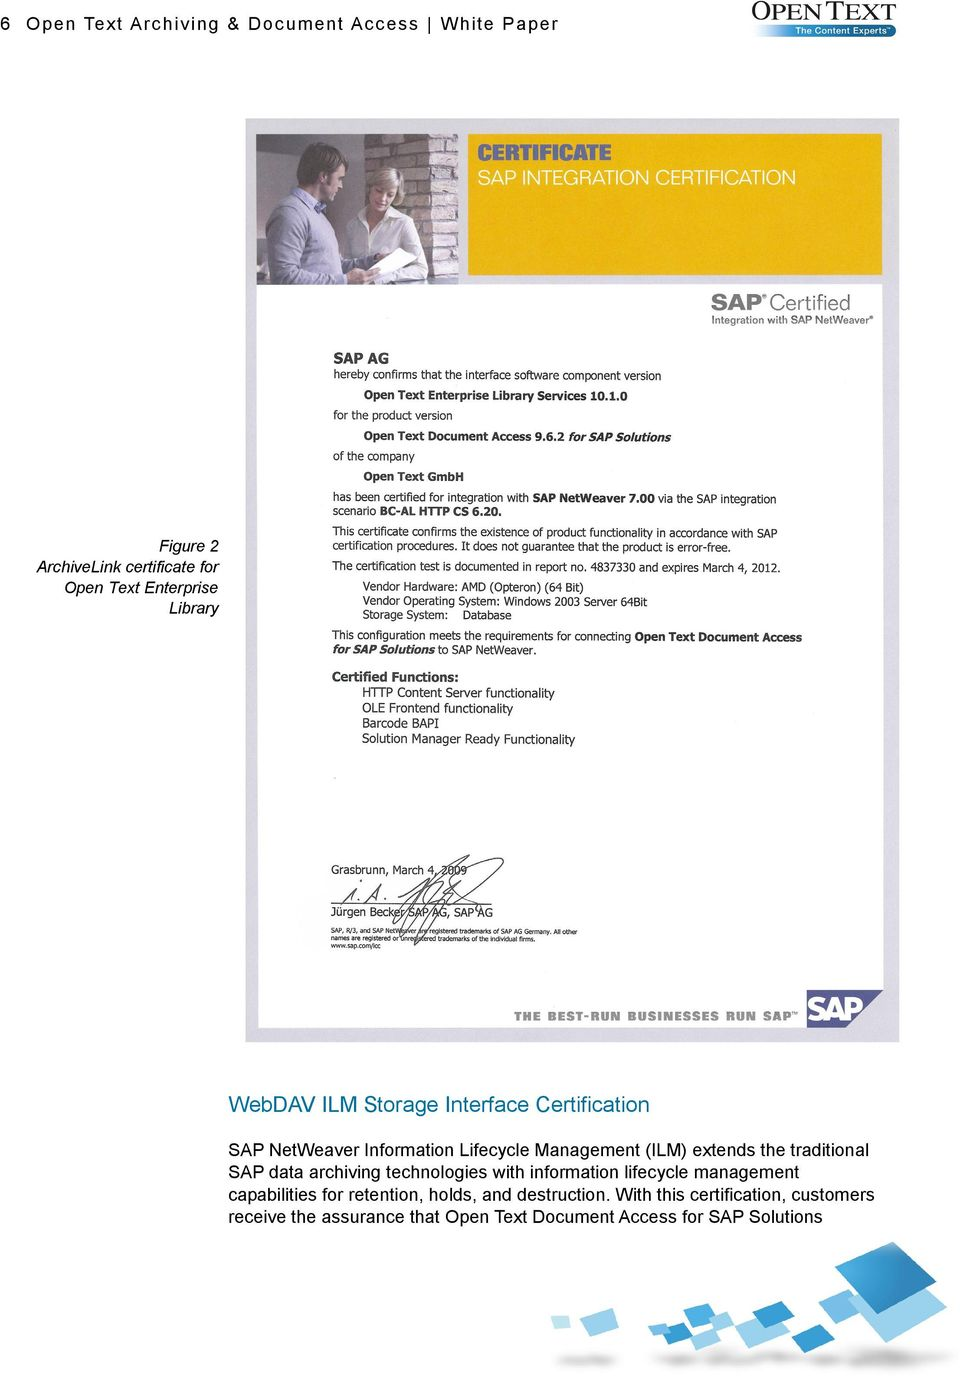 traditional SAP data archiving technologies with information lifecycle management capabilities for retention, holds,